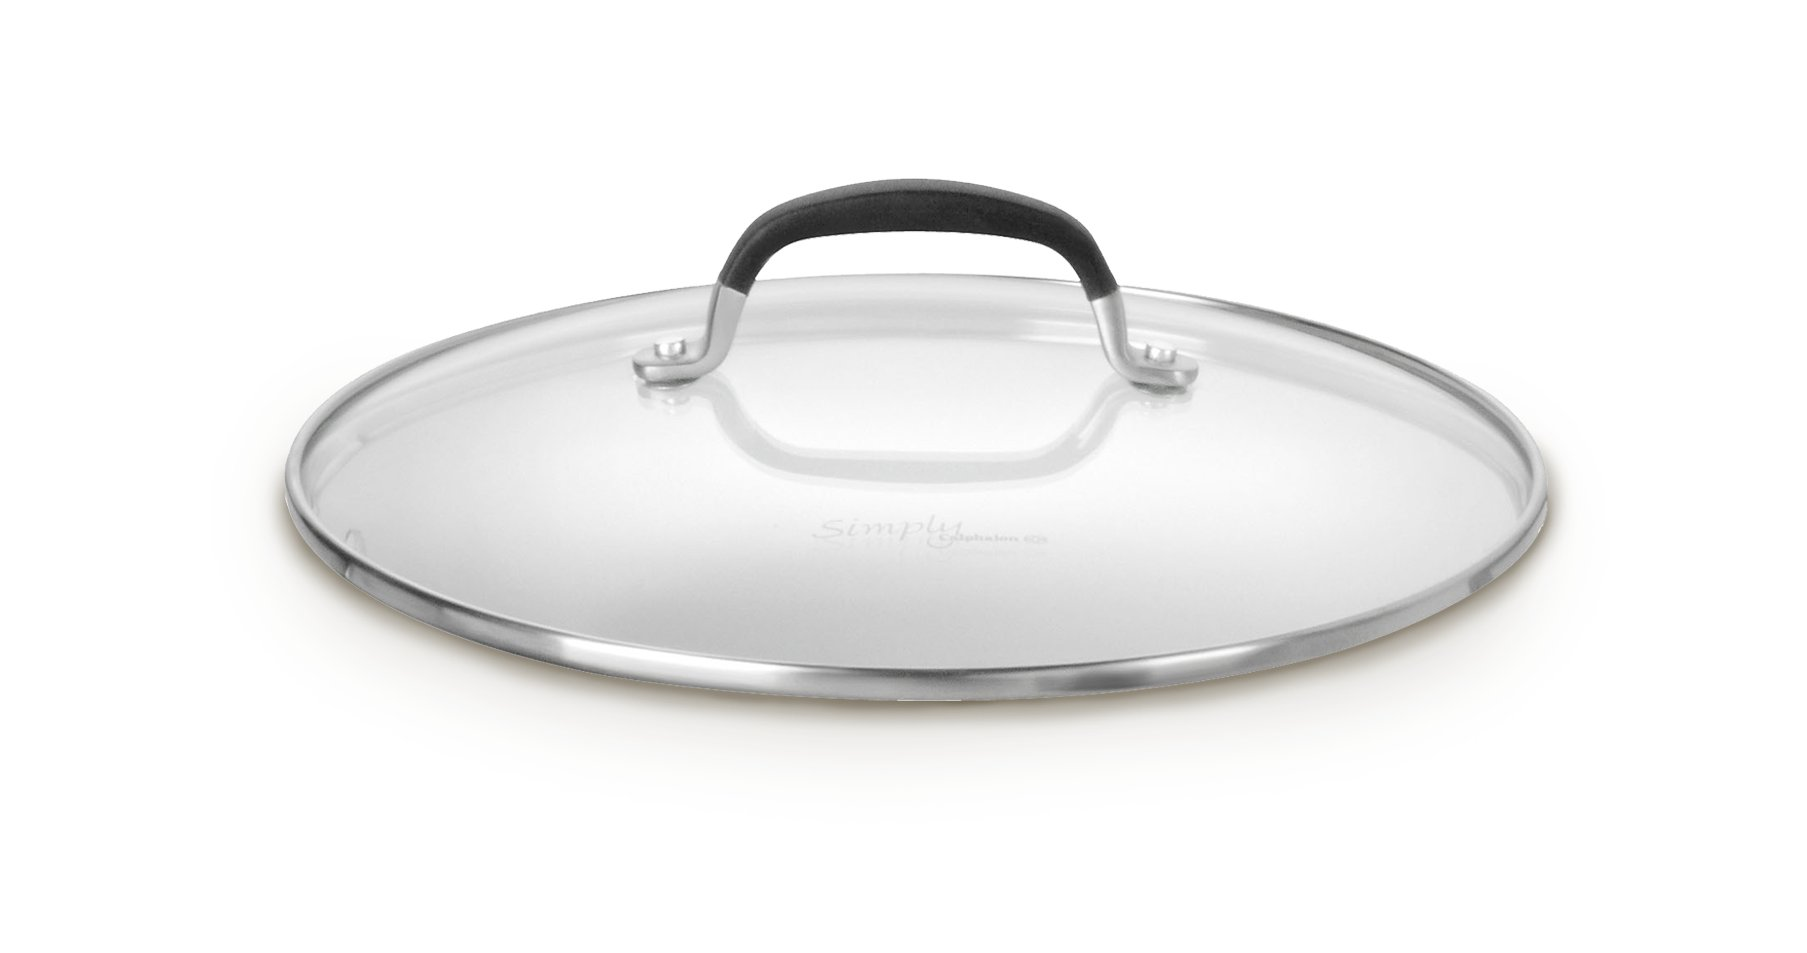 Simply Calphalon 8-in. Glass Lid